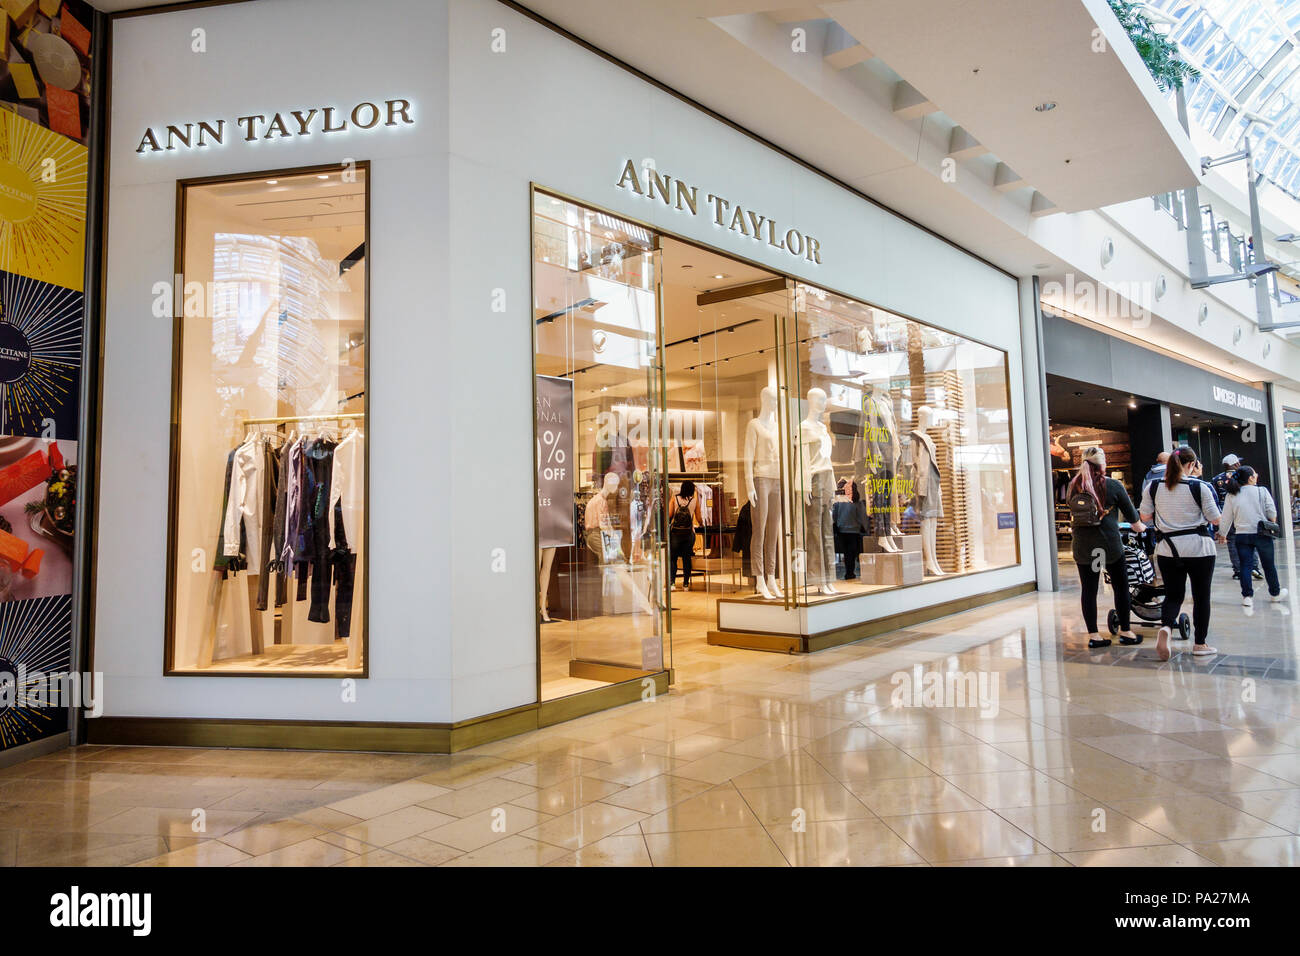 1f46b37bd16e Orlando Florida The Mall at Millenia shopping Ann Taylor women's clothing  retailer store window display entrance interior